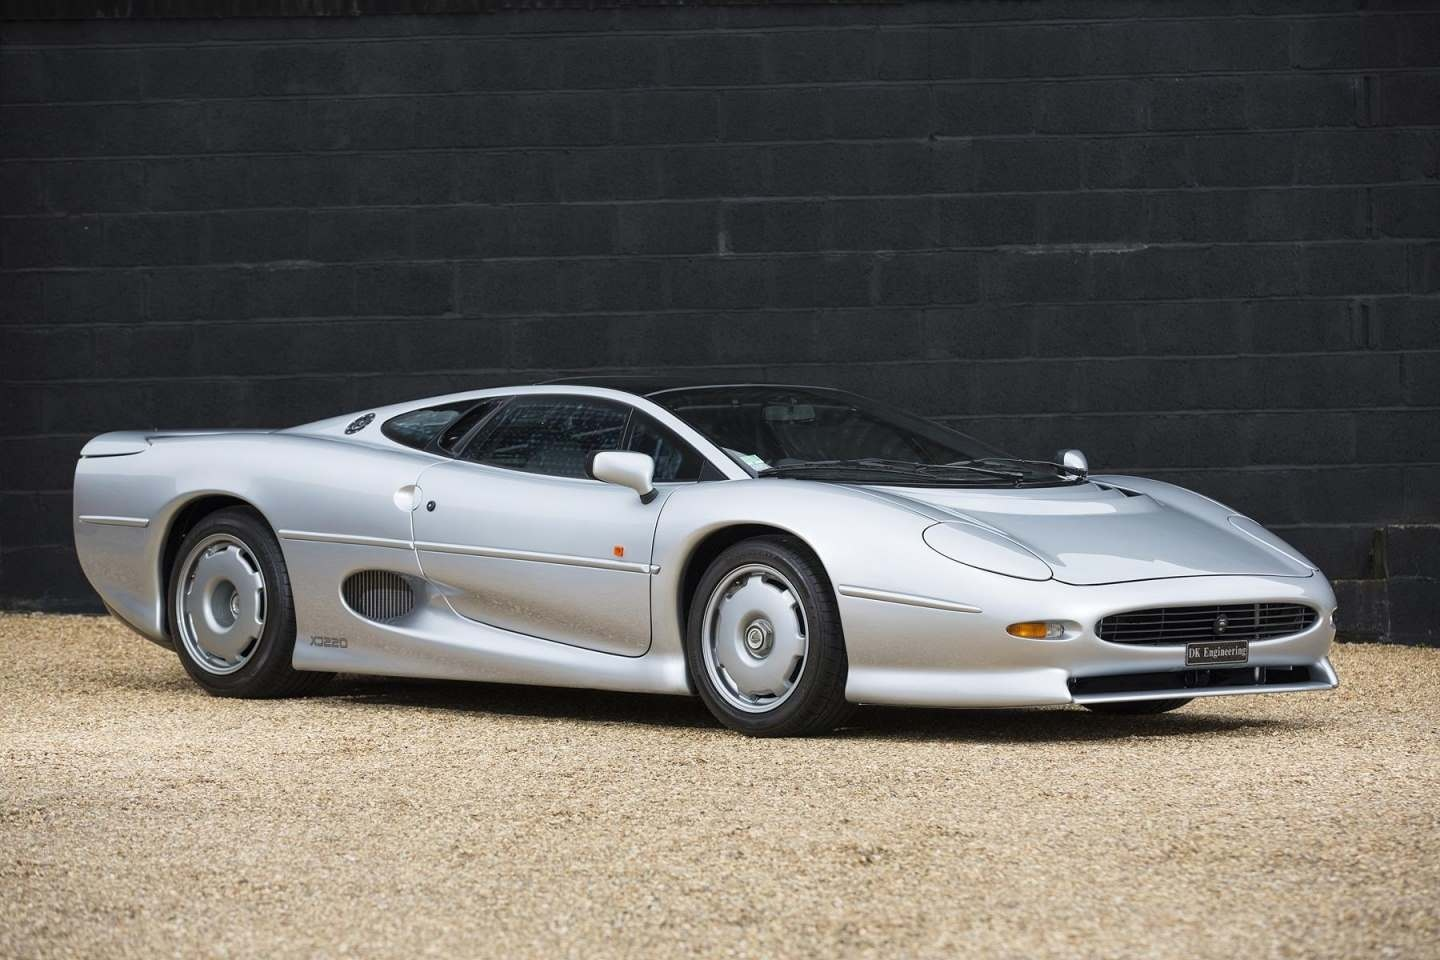 Porsche 959 For Sale >> Jaguar XJ220 for sale - Vehicle Sales - DK Engineering